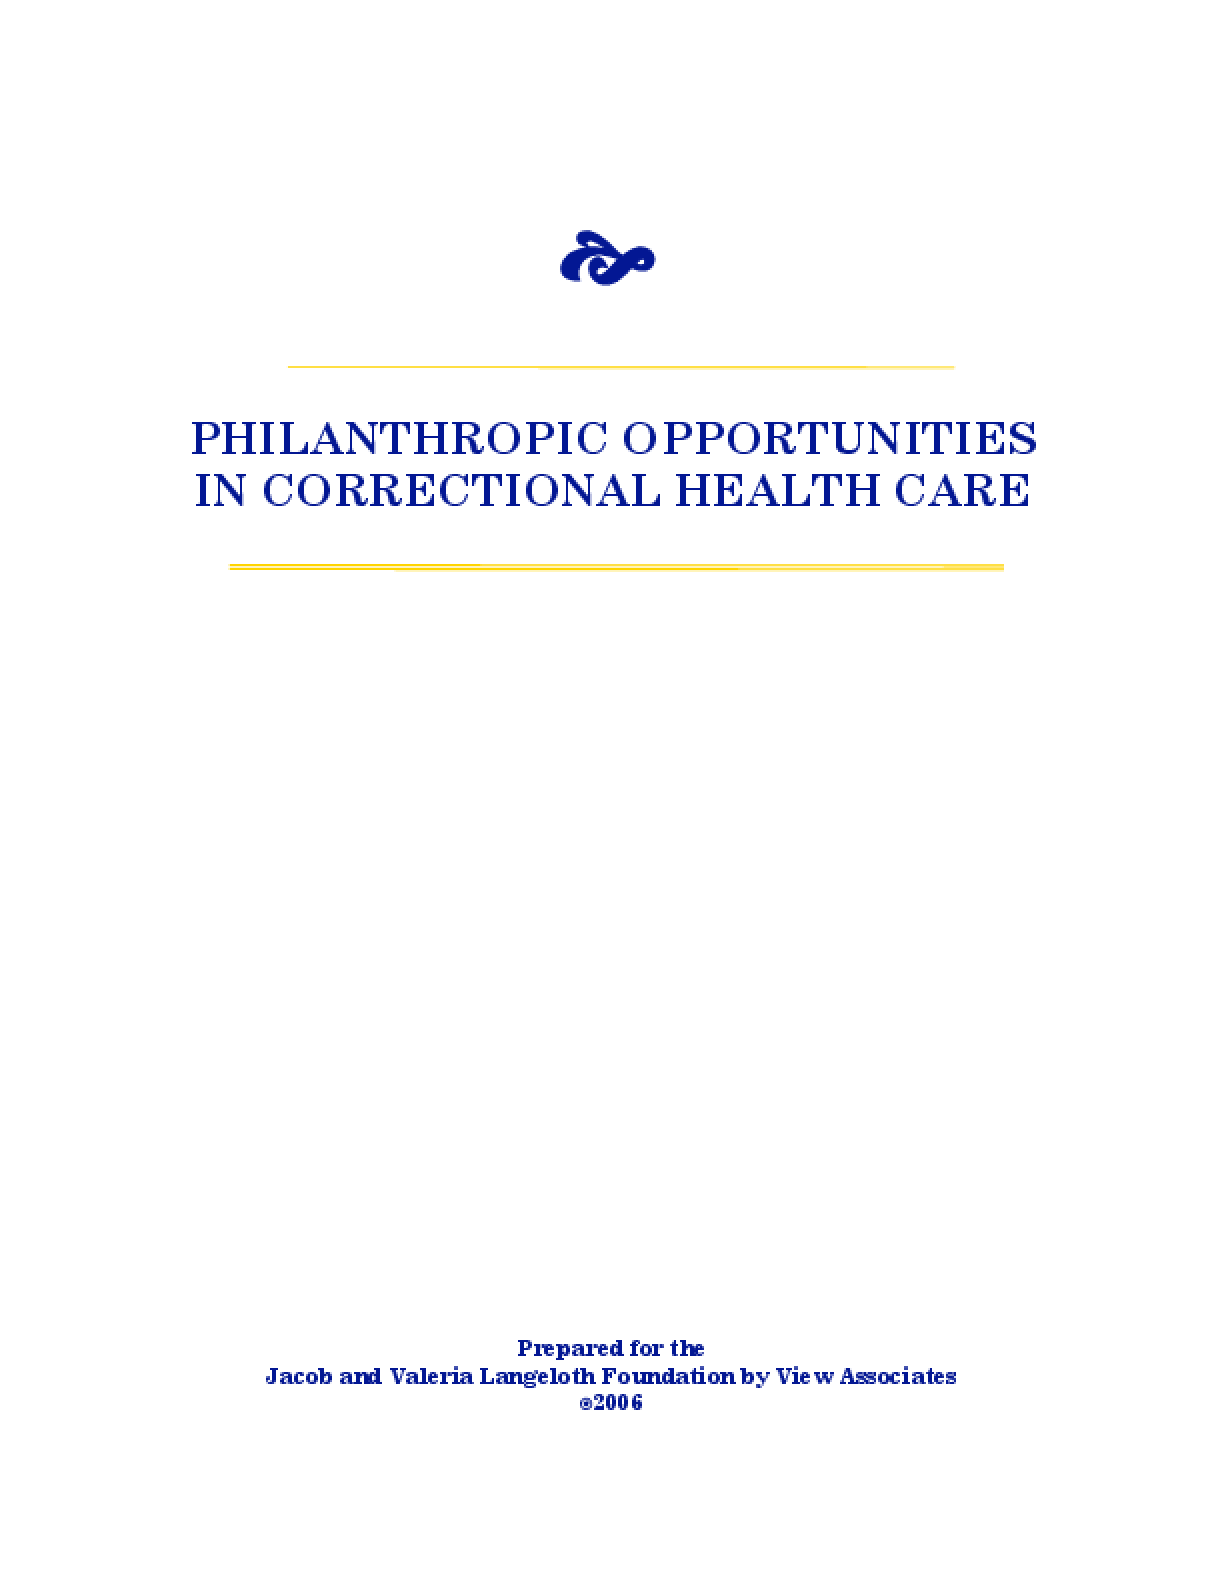 Philanthropic Opportunities in Correctional Health Care